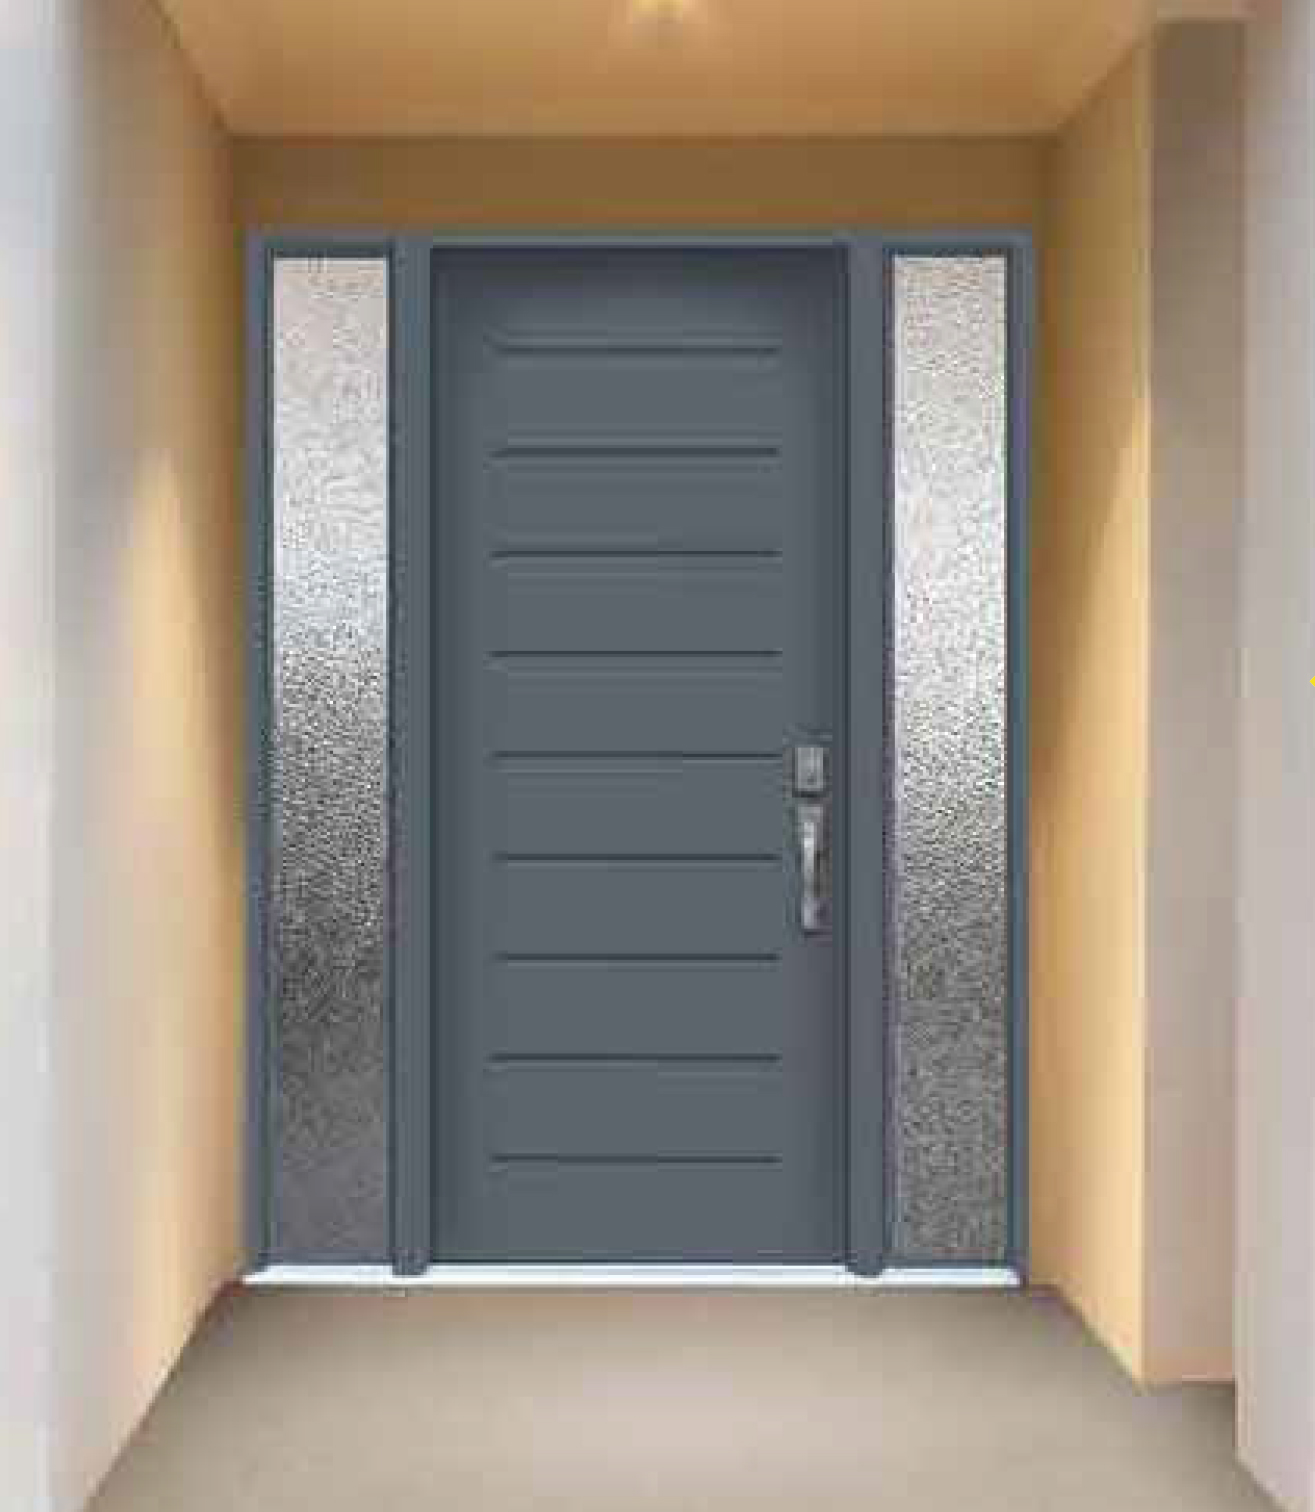 Design collection archives modern doors for Modern entrance door design